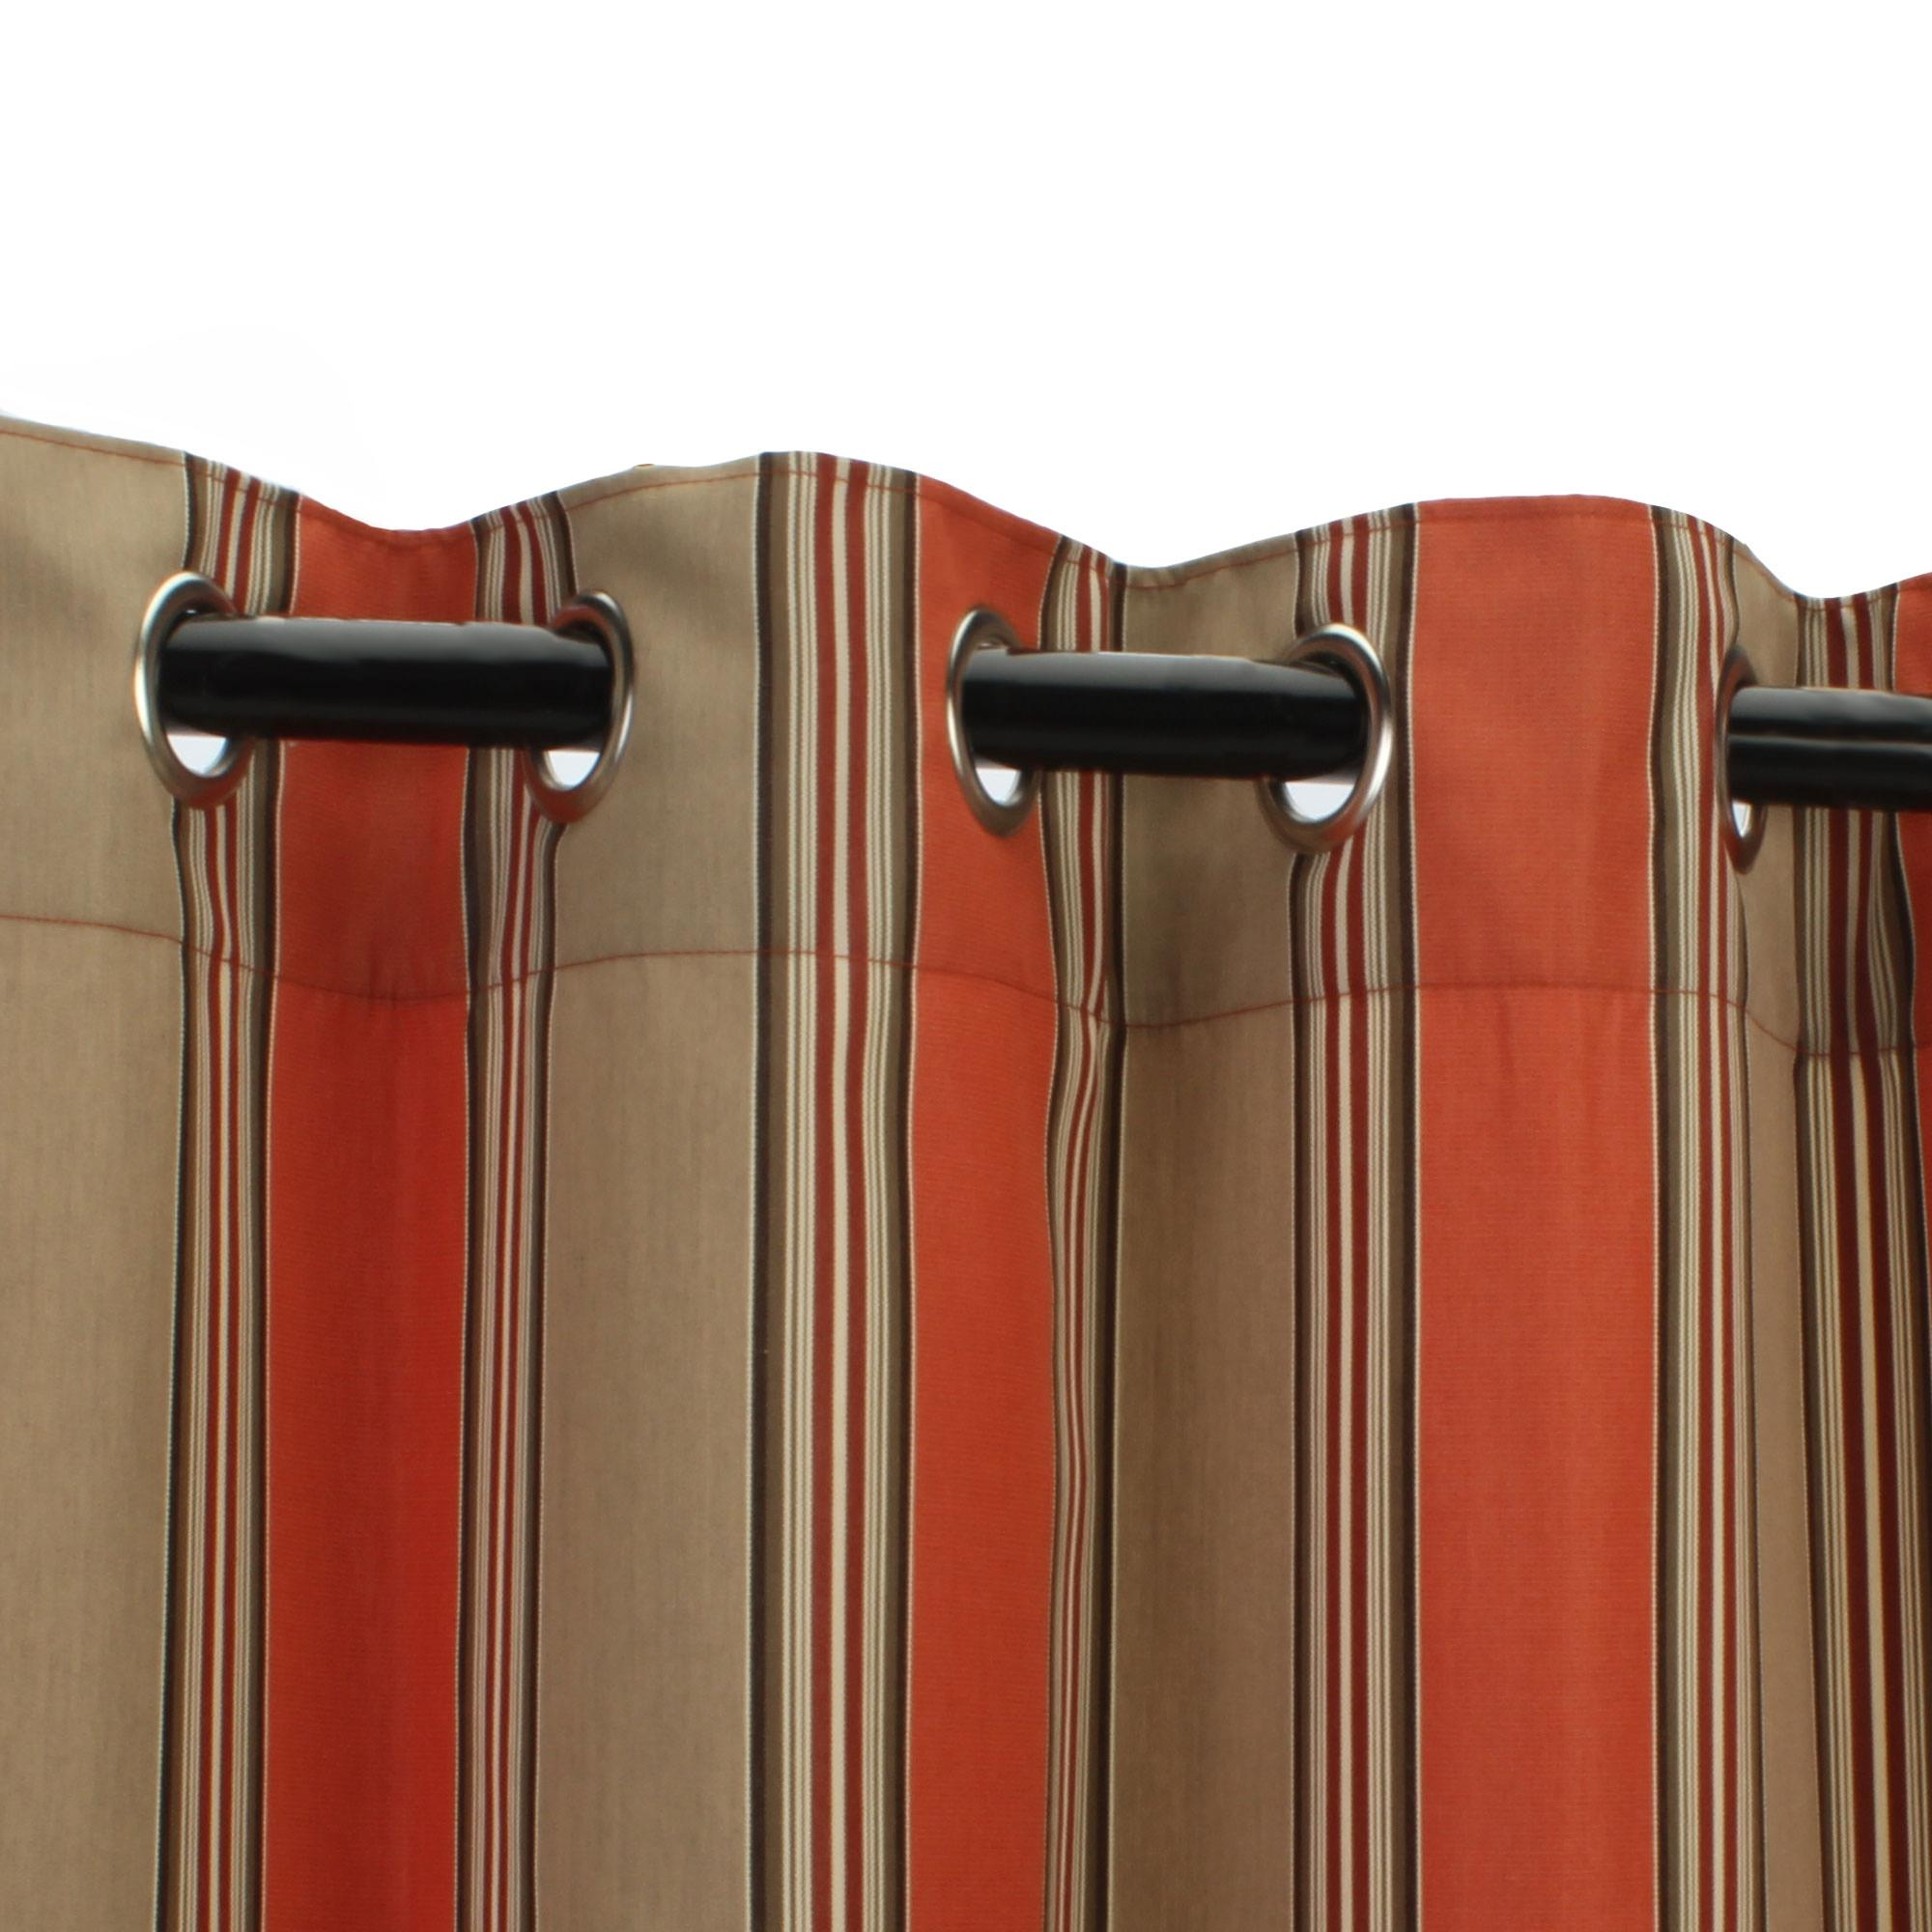 Striped outdoor curtains - Red Brown Striped Design Of Curtains Outdoor Curtain Panels